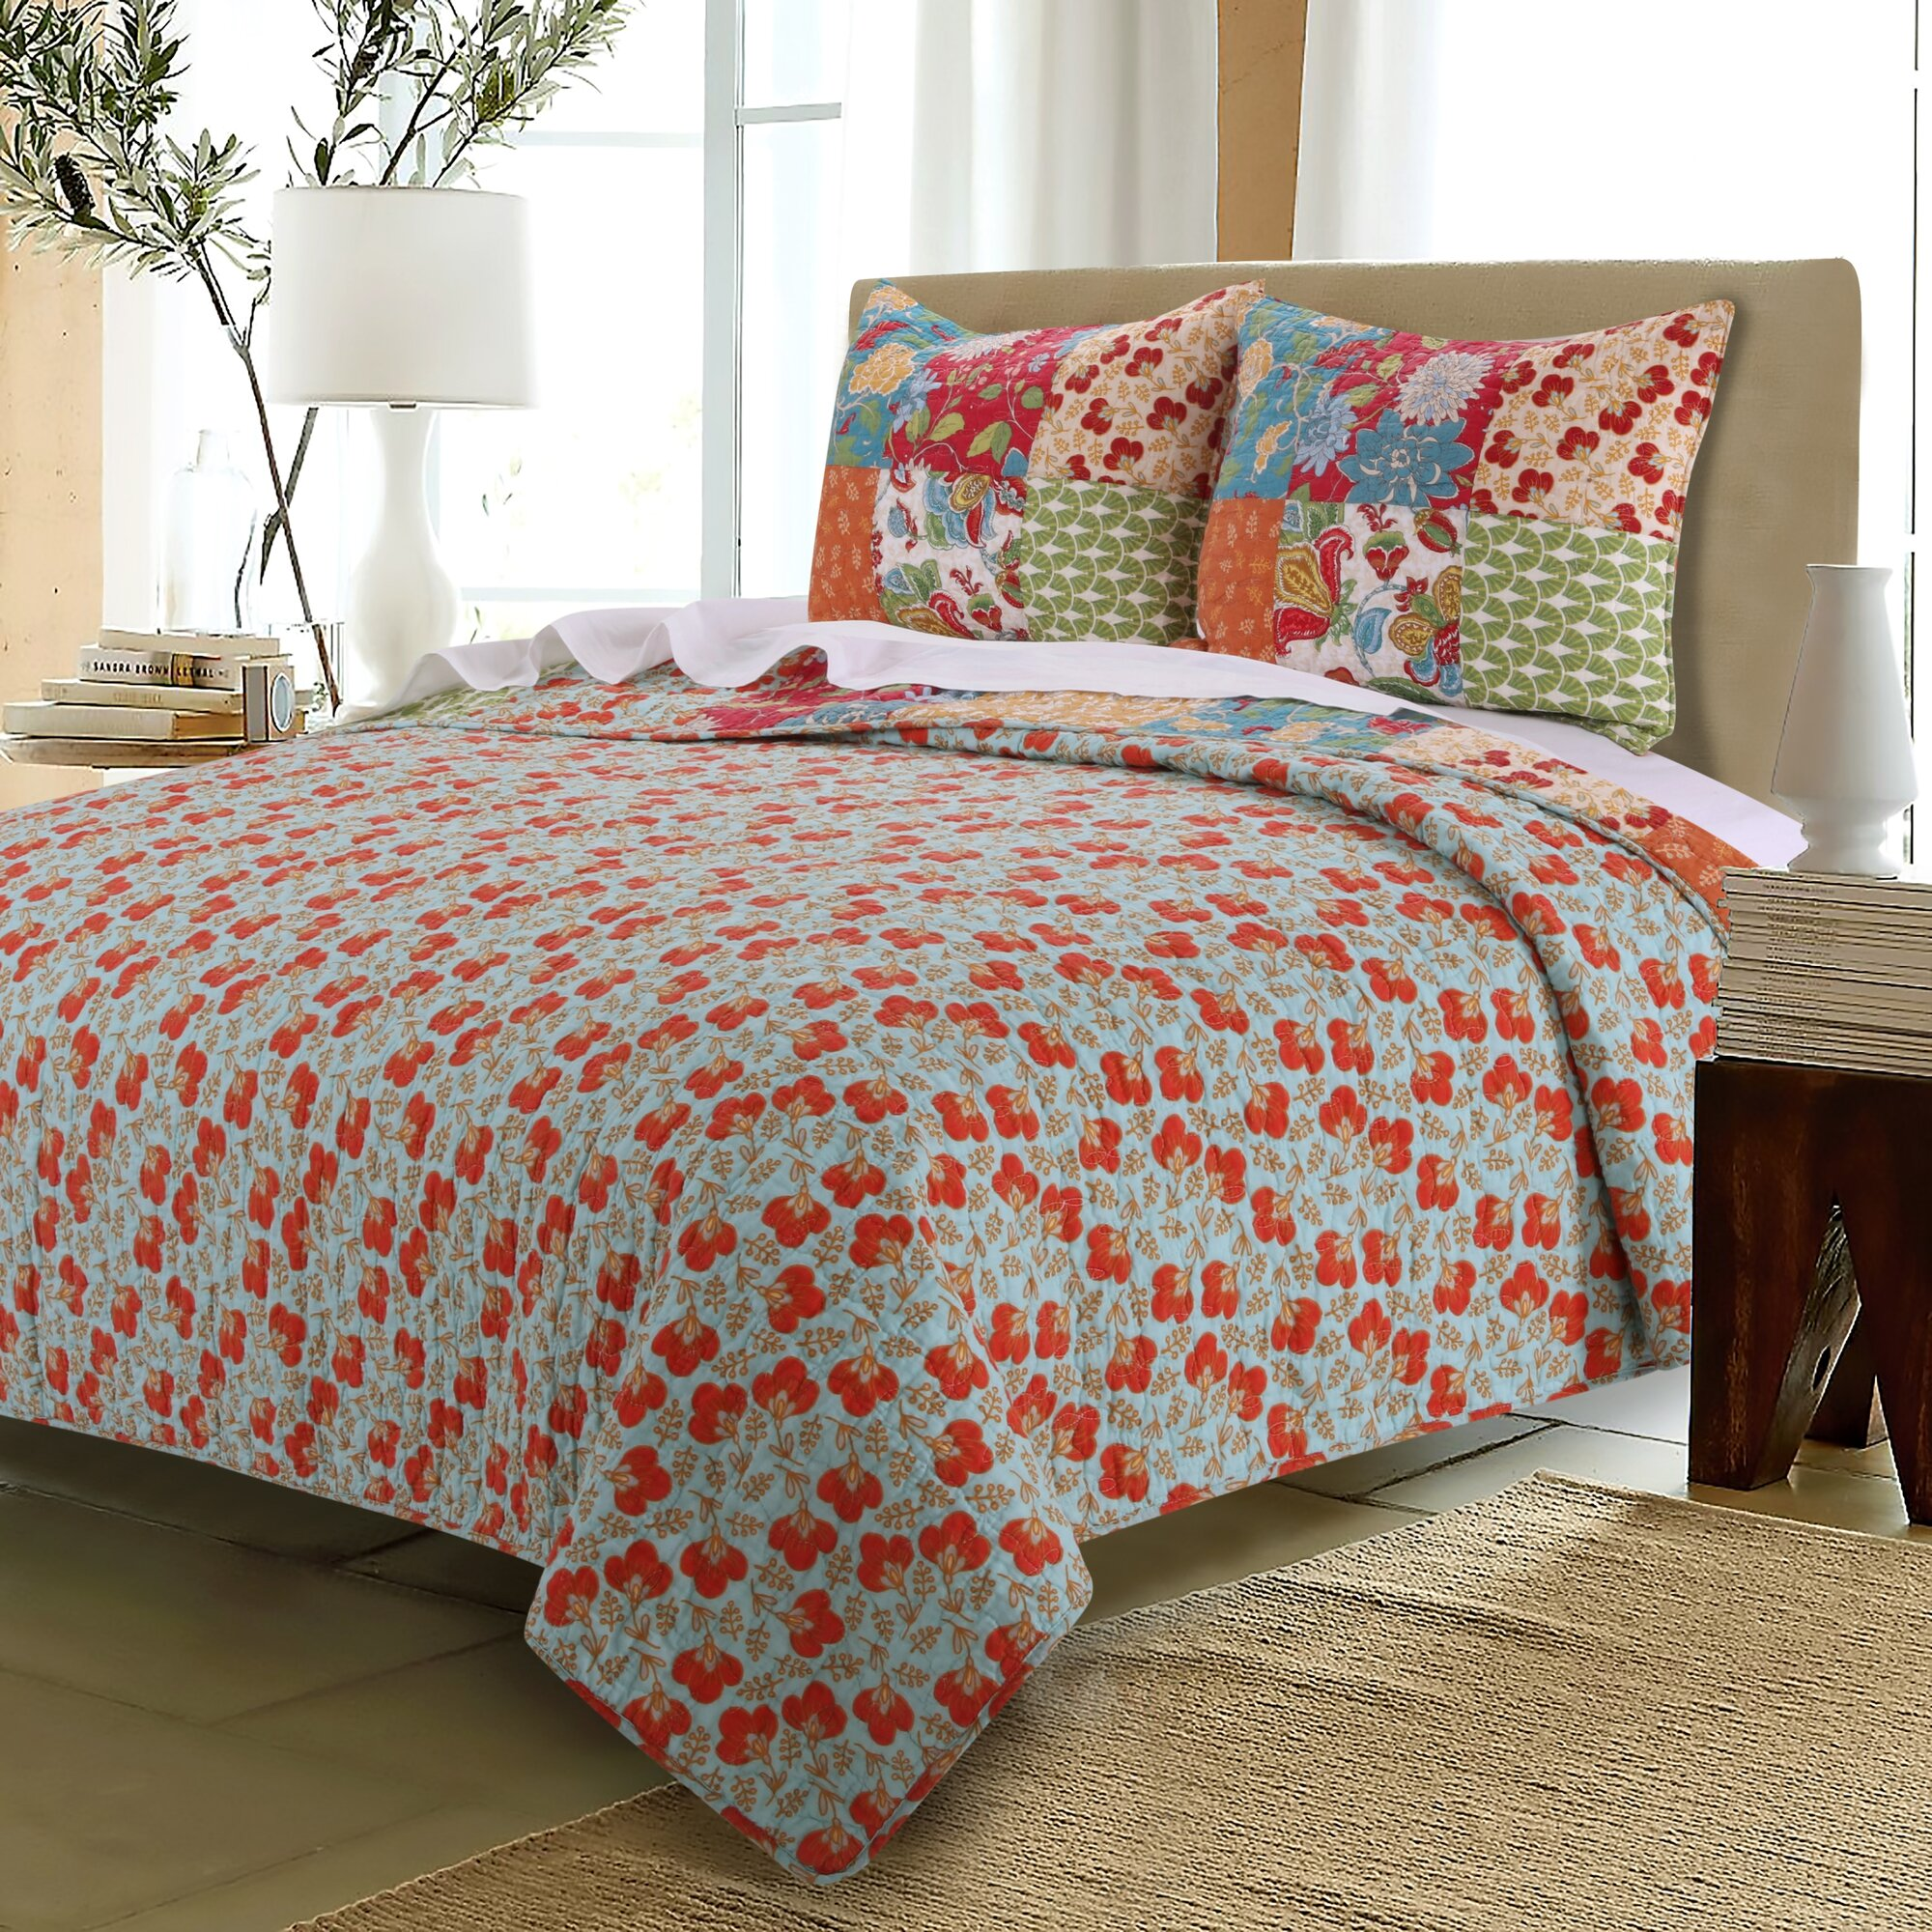 Bed sheet set with quilt - Terra Blossom Reversible Quilt Set